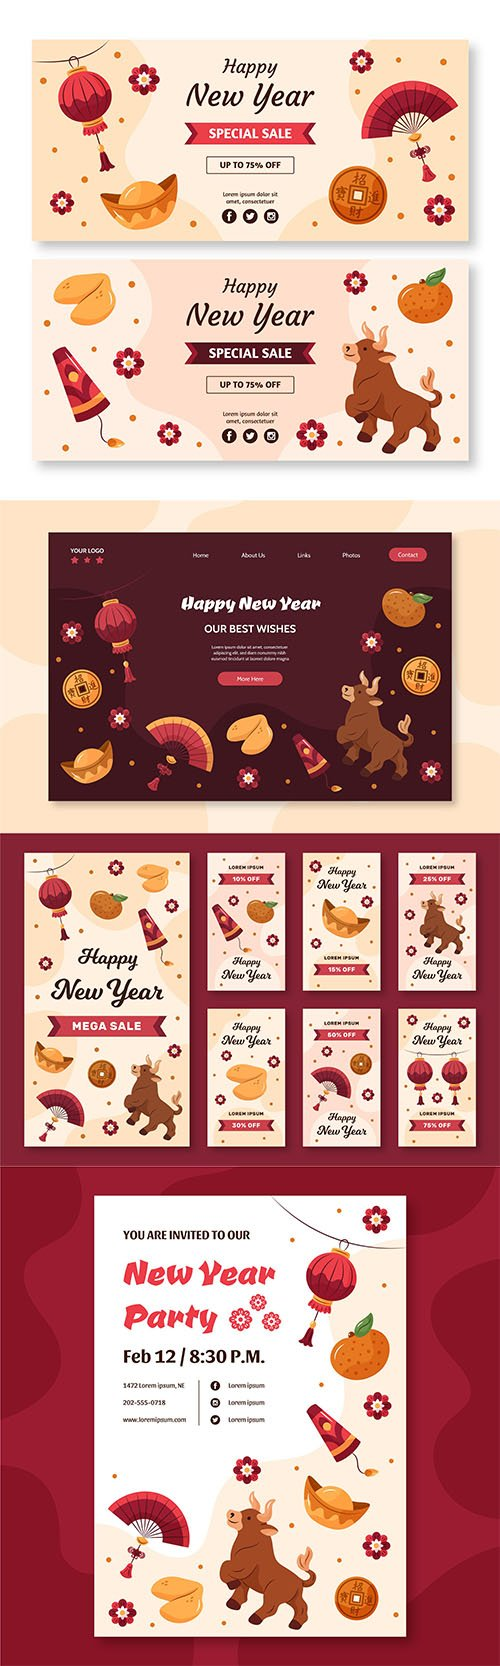 Hand-drawn instagram stories, banner, landing page collection chinese new year